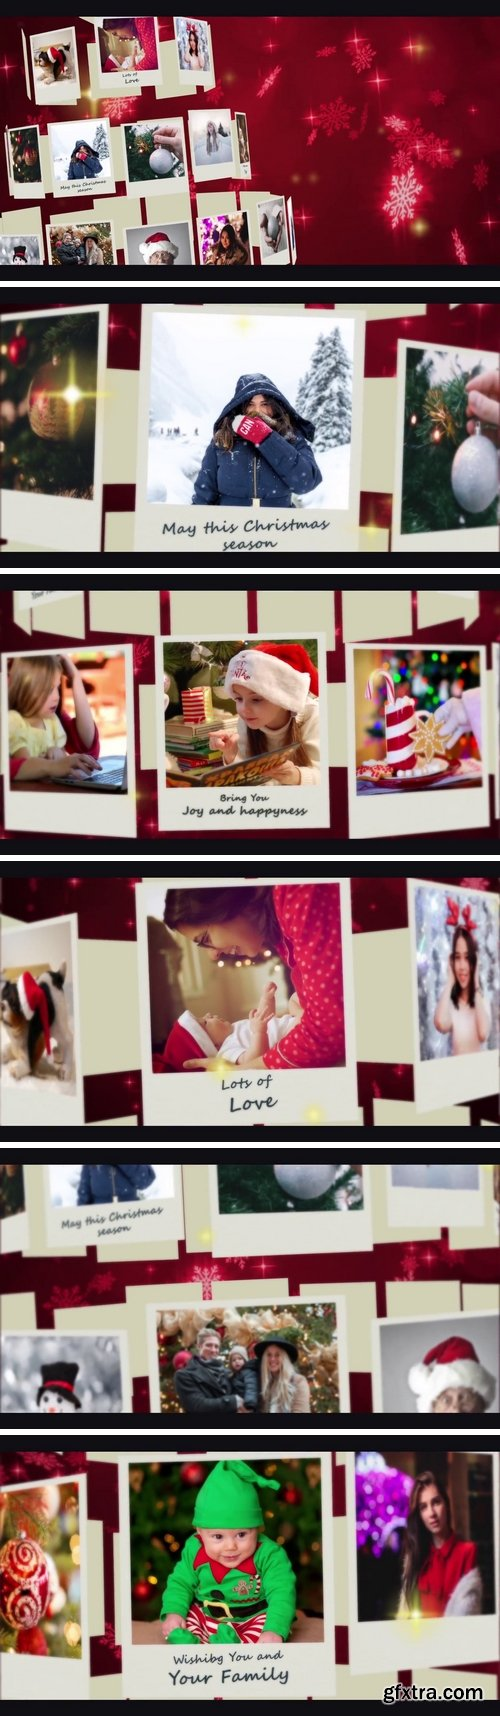 MA - Christmas Slideshow After Effects Templates 151305